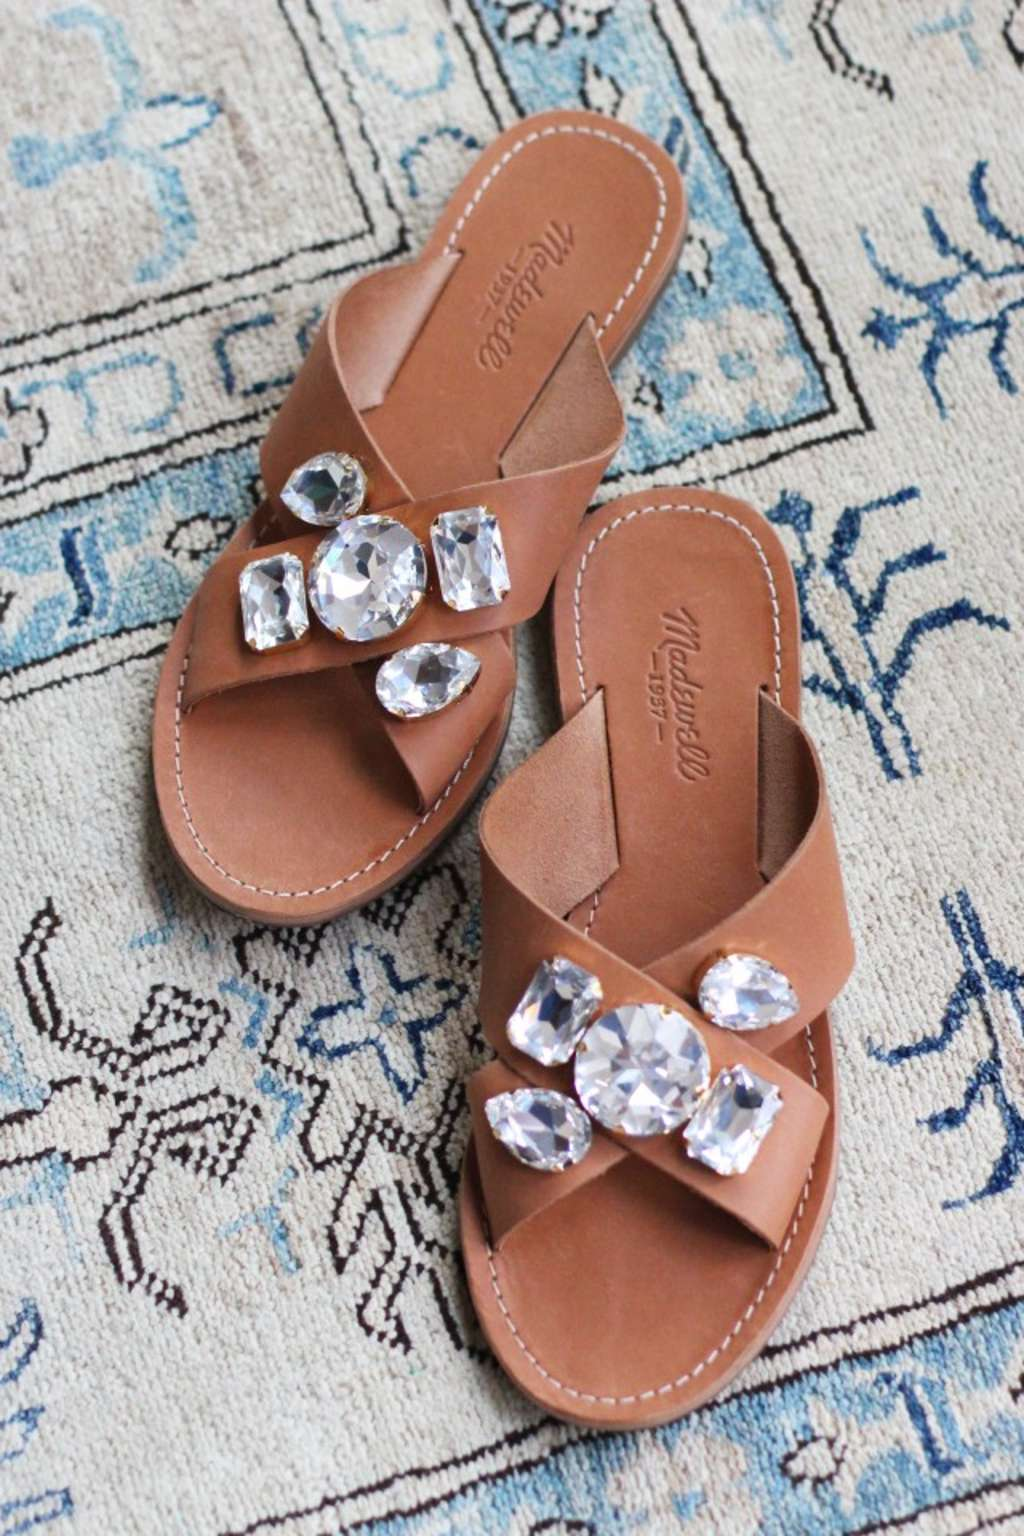 Summer Style Upgrade: 10 DIY Ways to Spruce Up Your Sandals